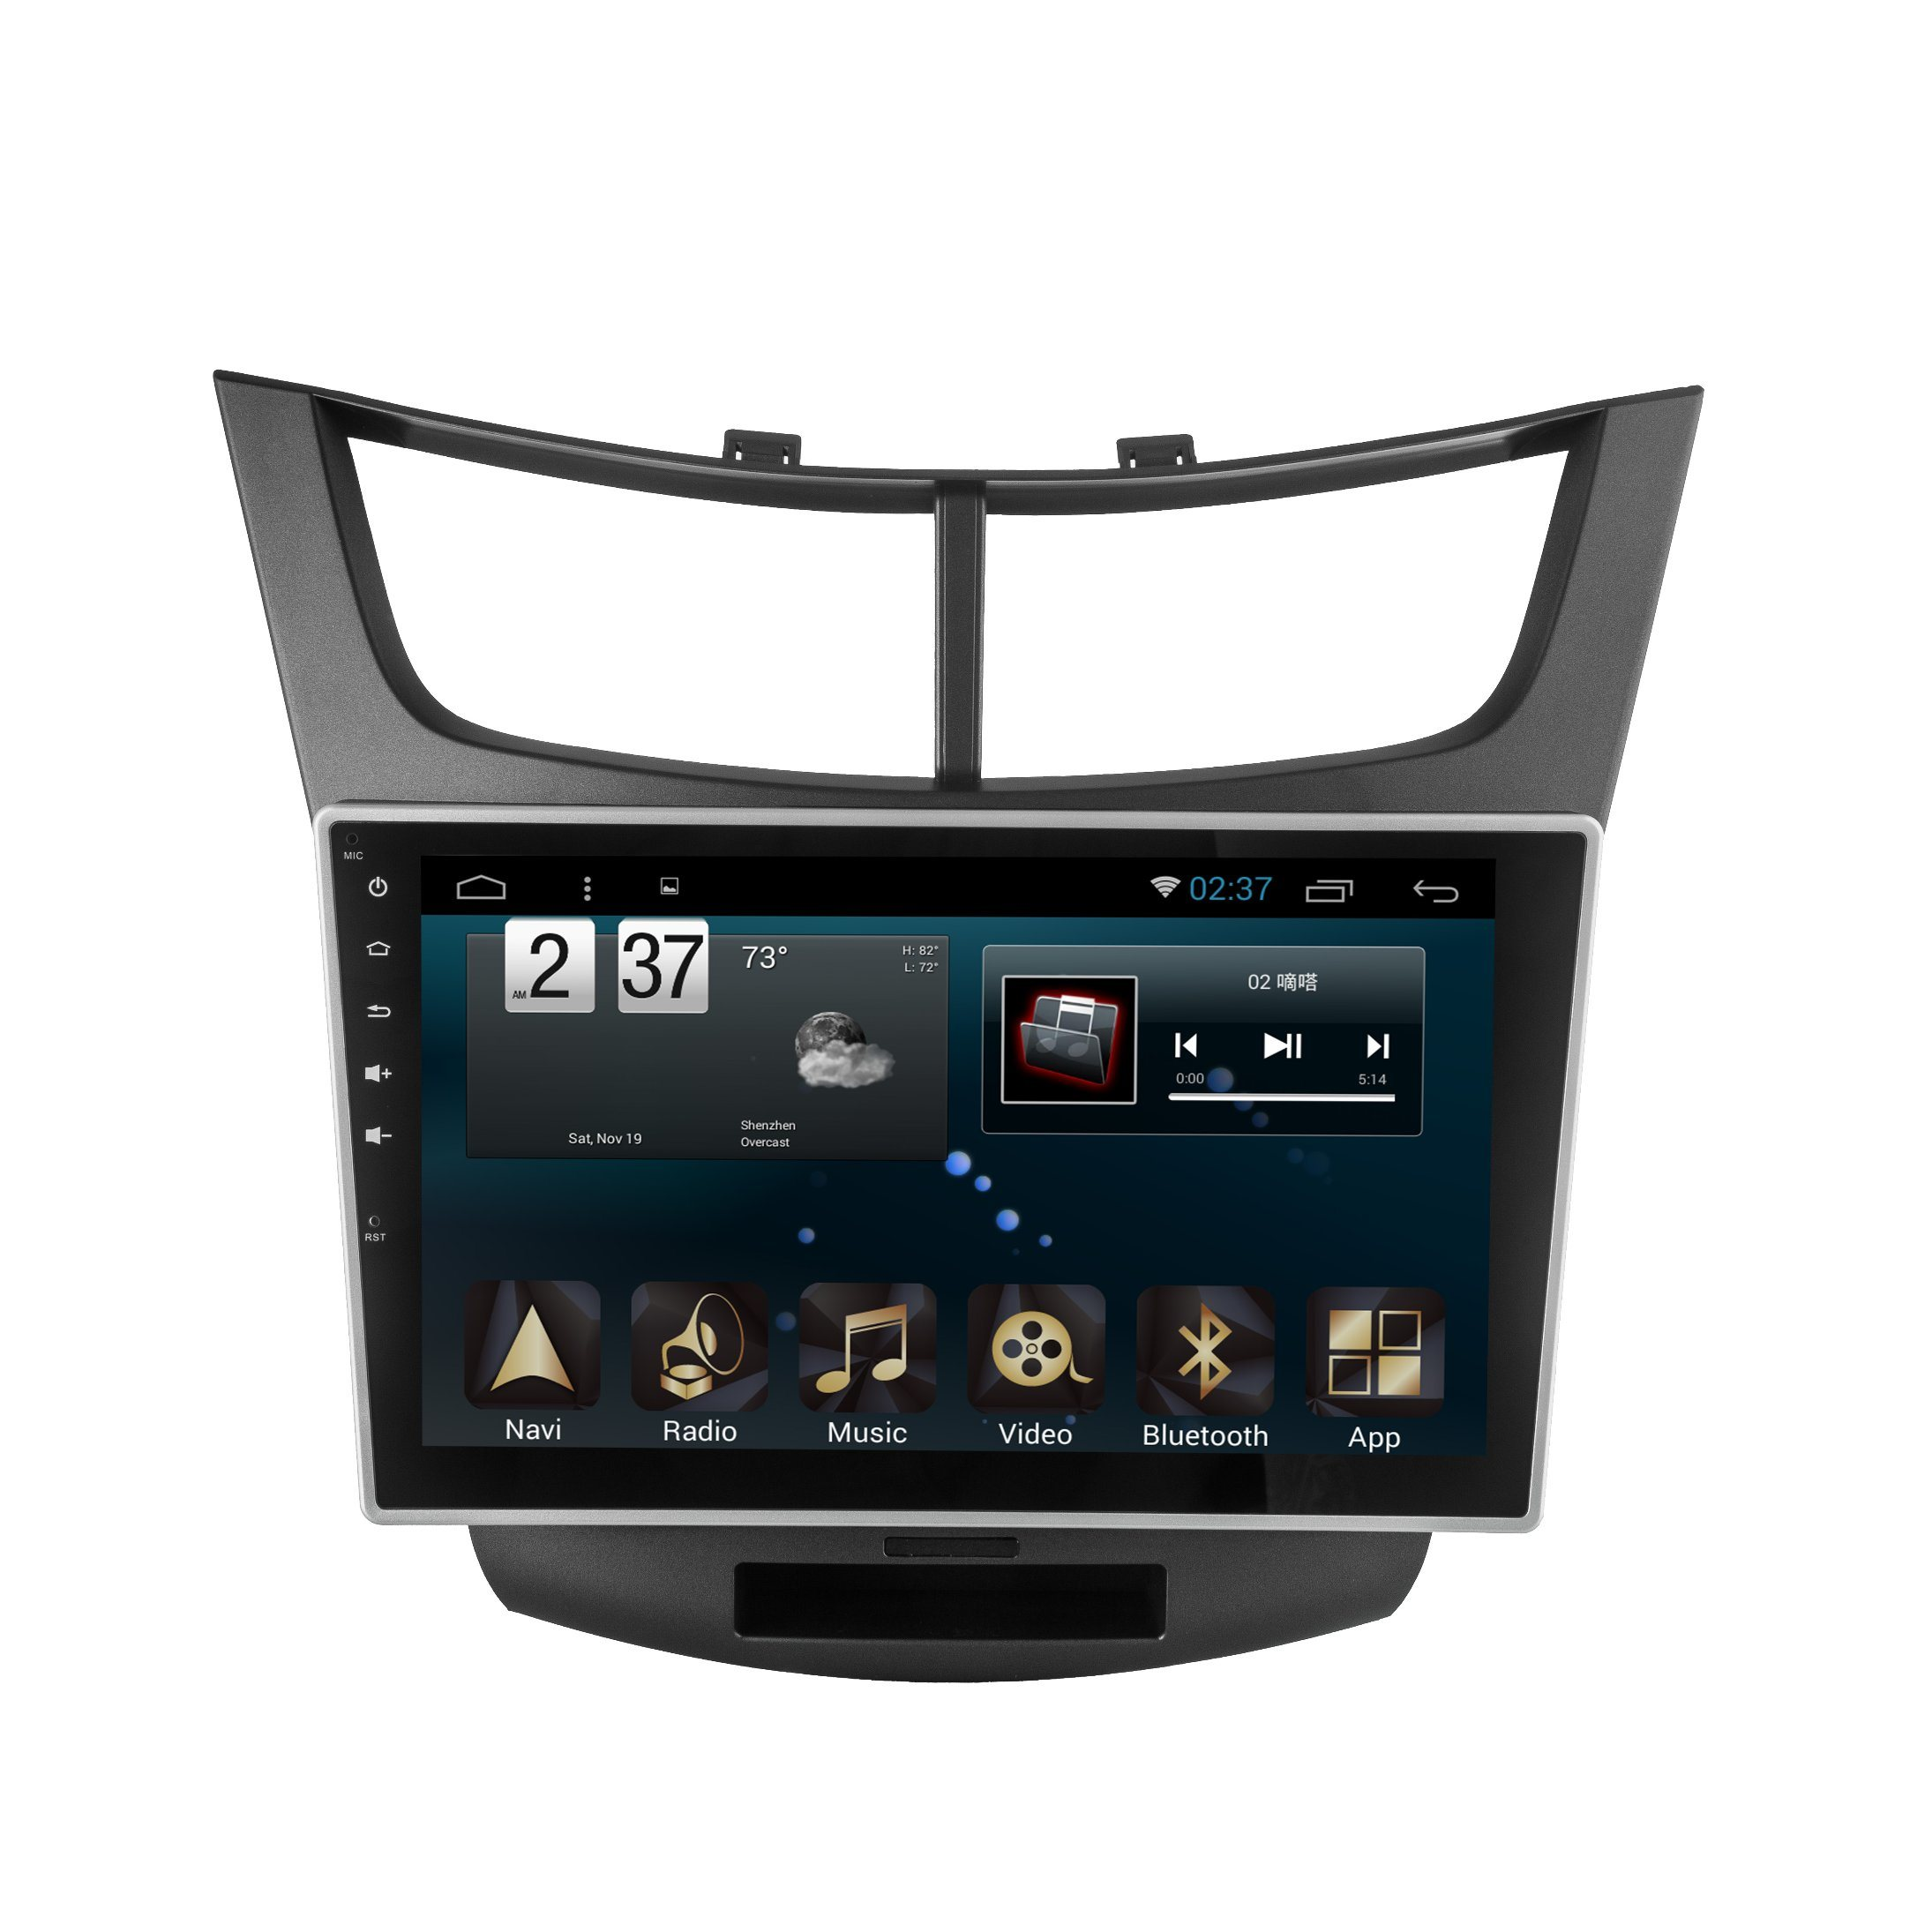 New Ui Android System Car Accessories for Sail 3 2015 with Car GPS Navigation